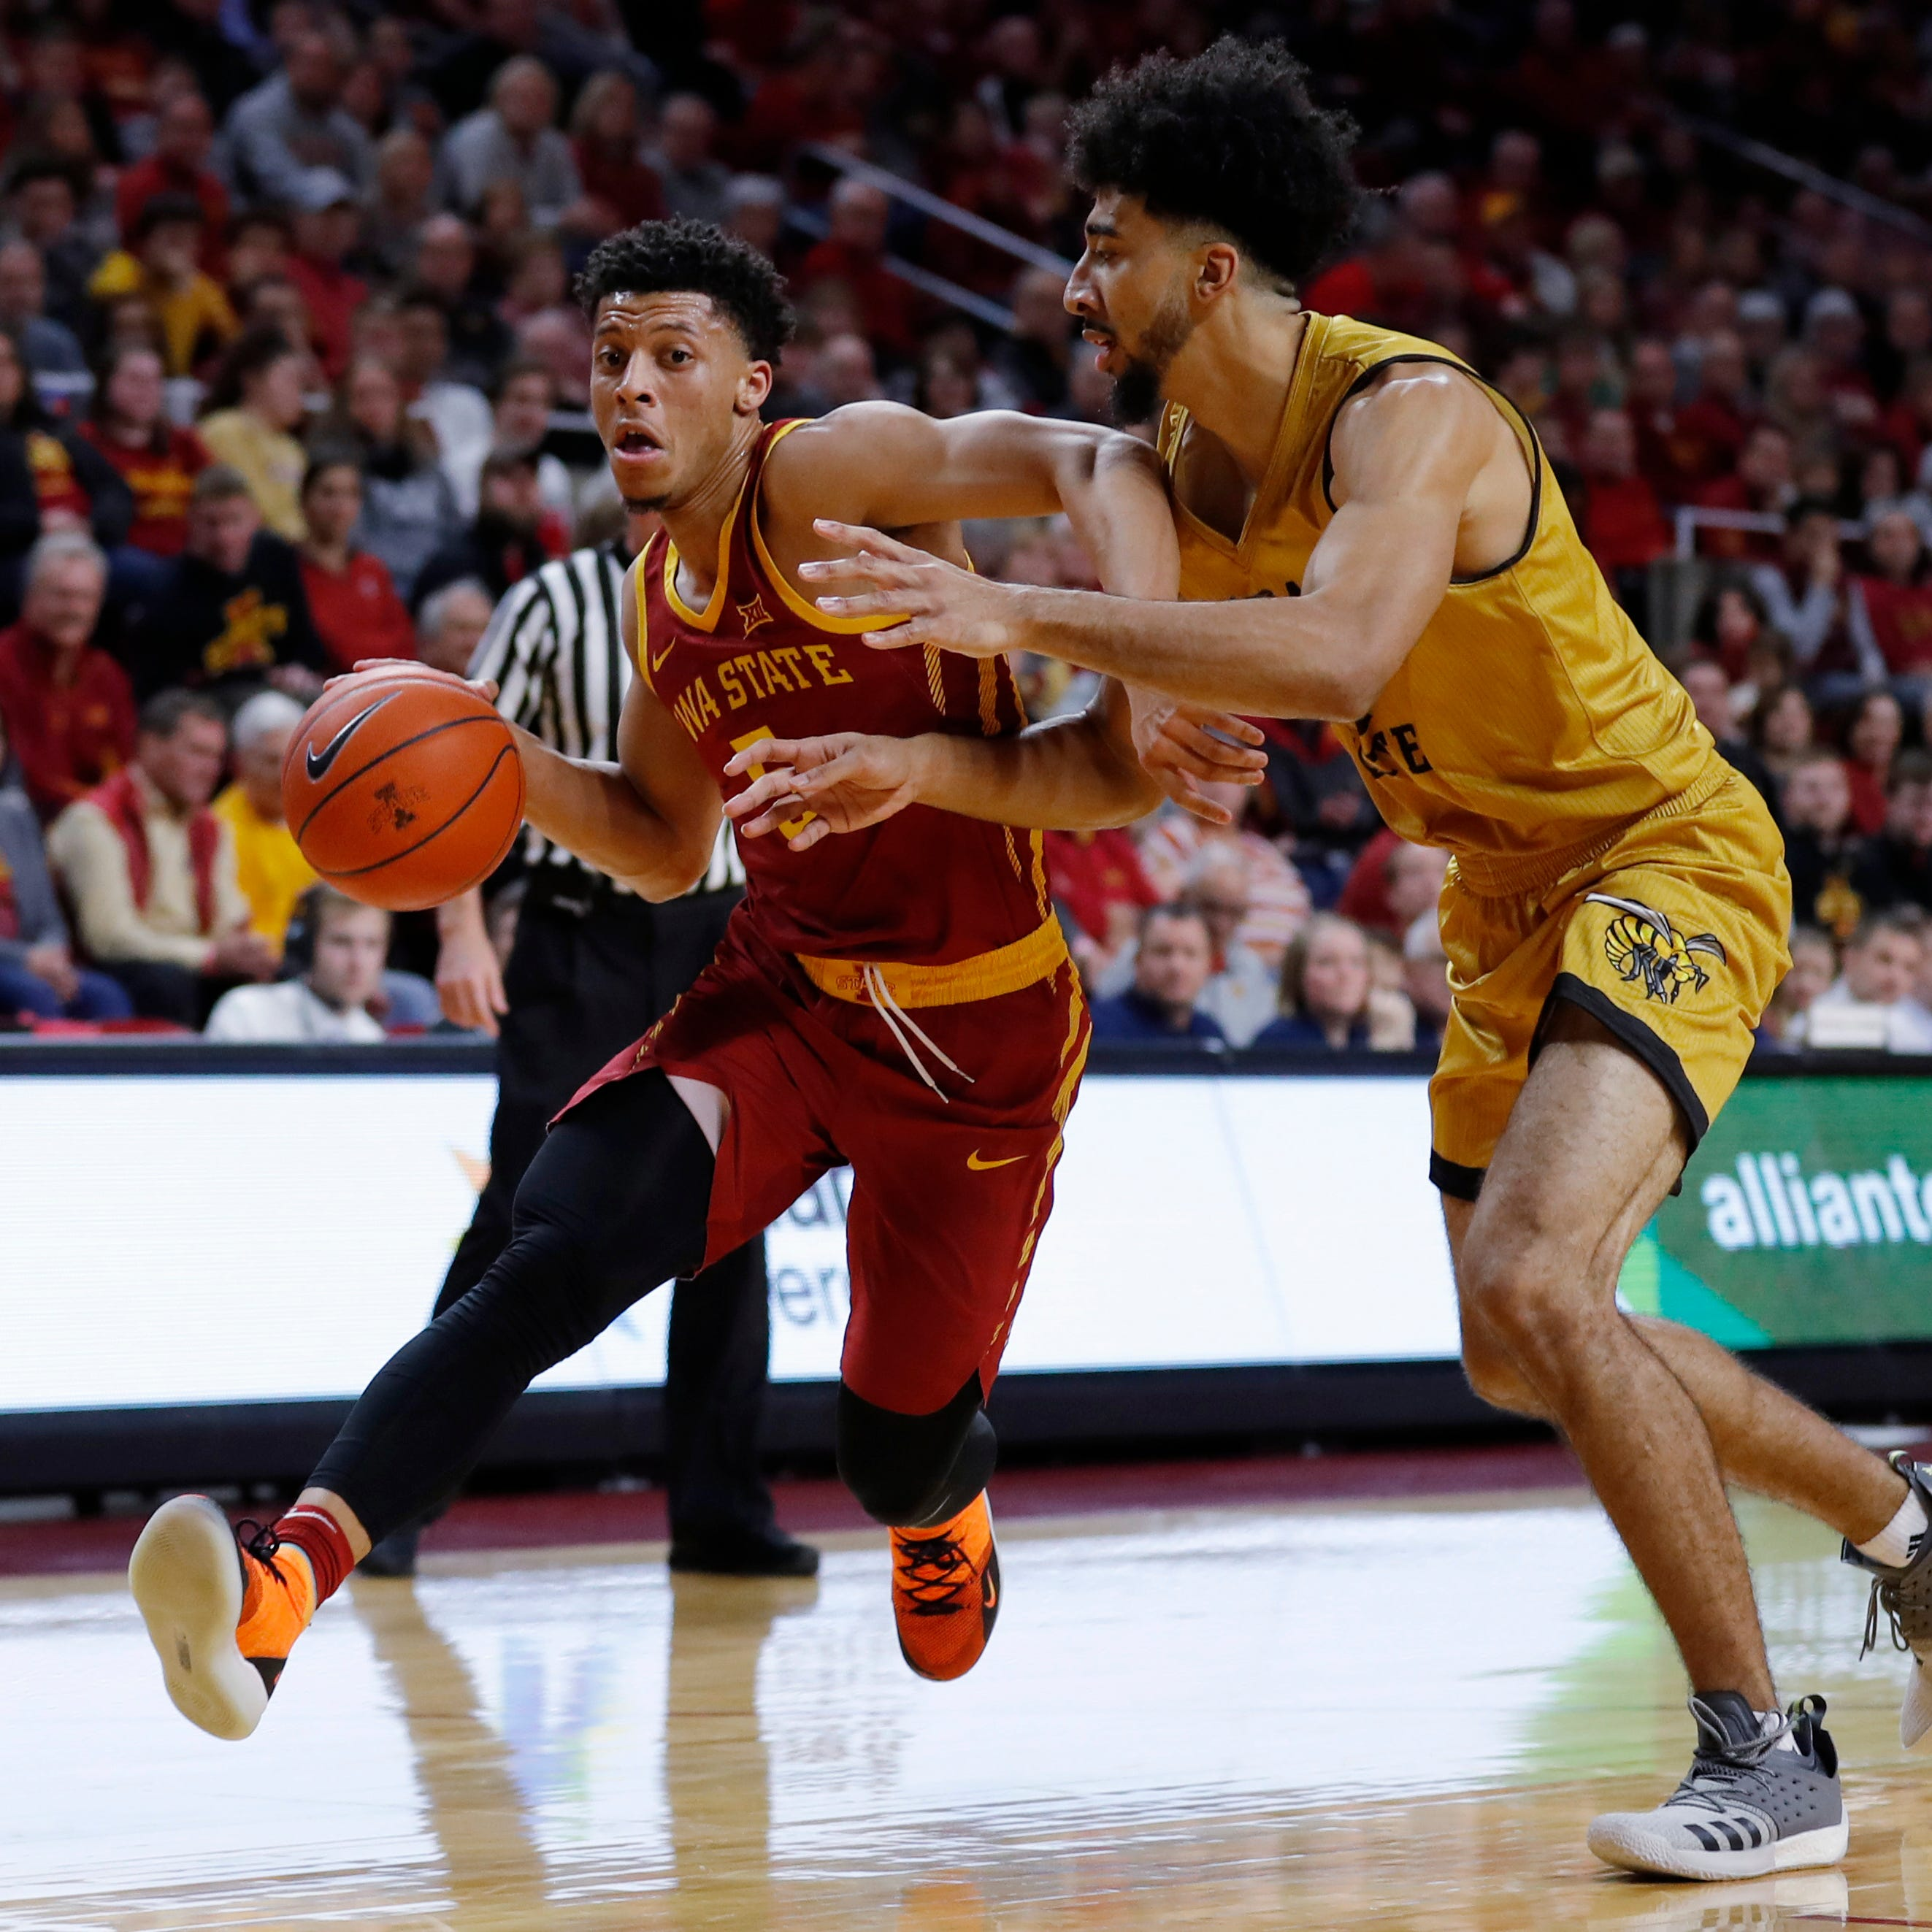 Peterson: Iowa State's future point guard might be a '19 recruit — or maybe he's already on the team